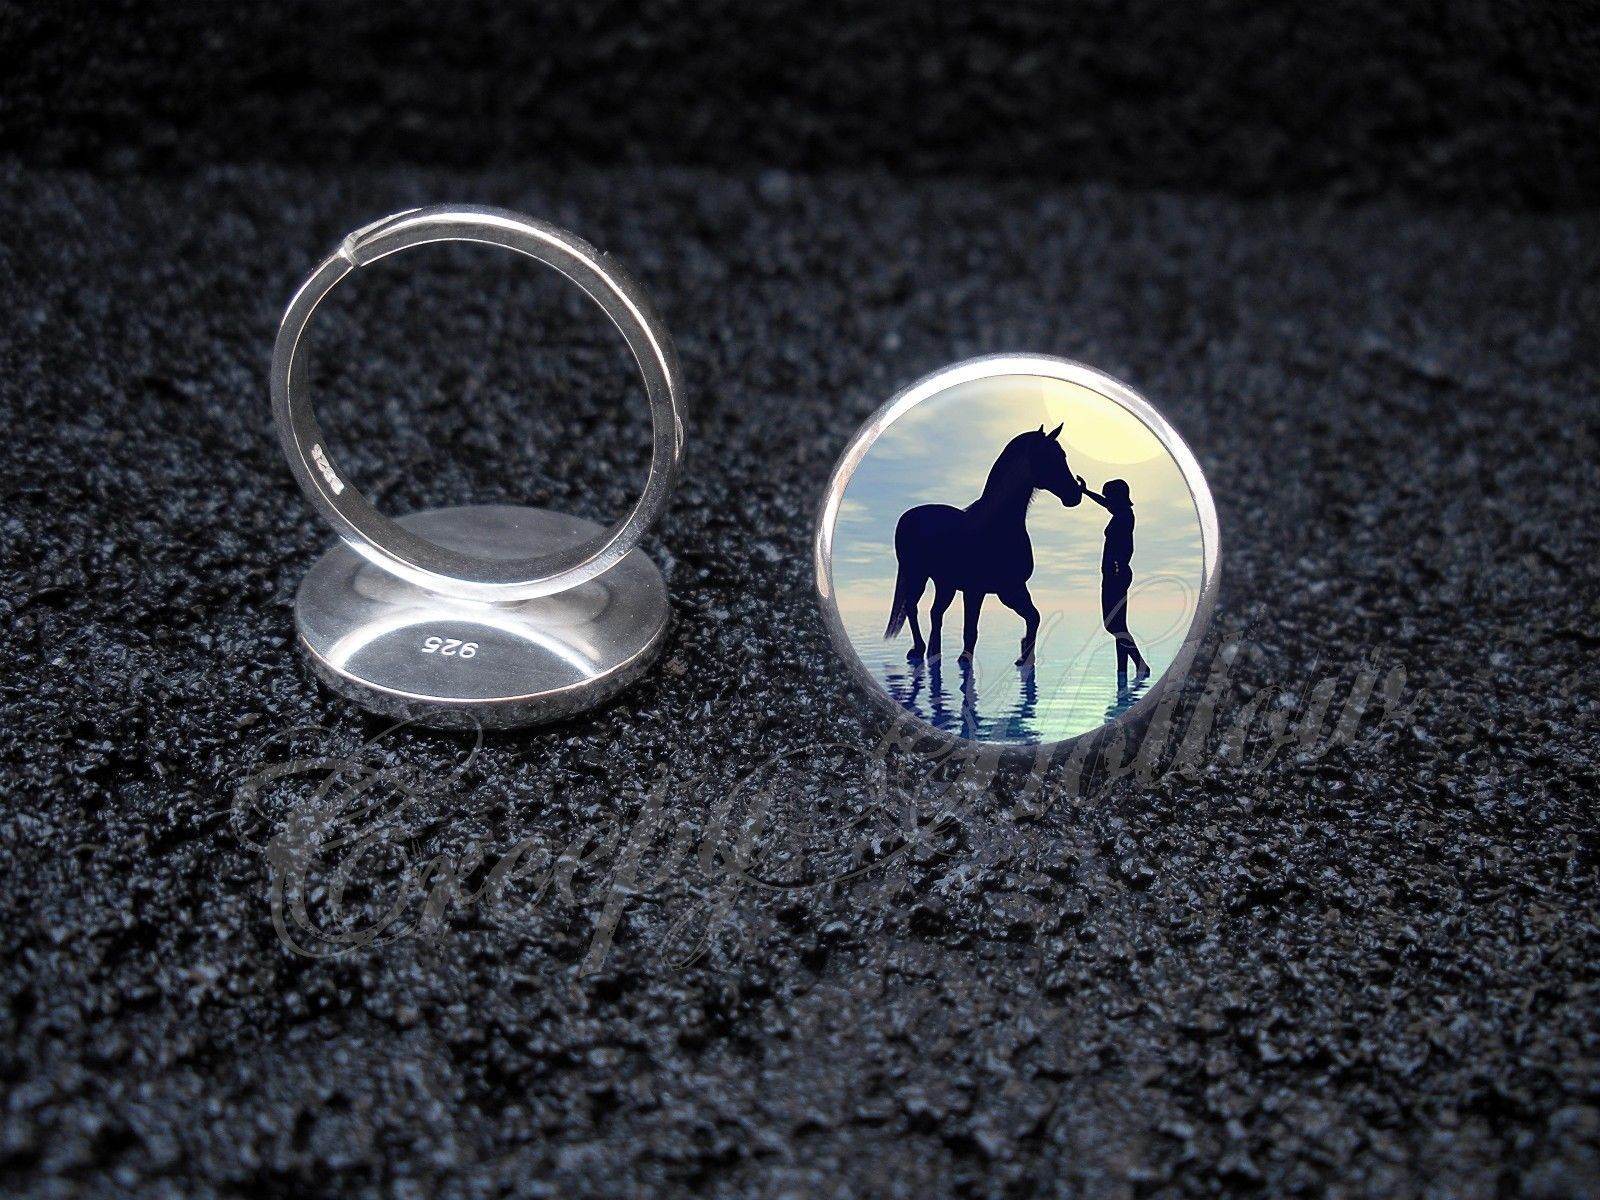 Primary image for 925 Sterling Silver Adjustable Ring Woman With Horse Walking in Water